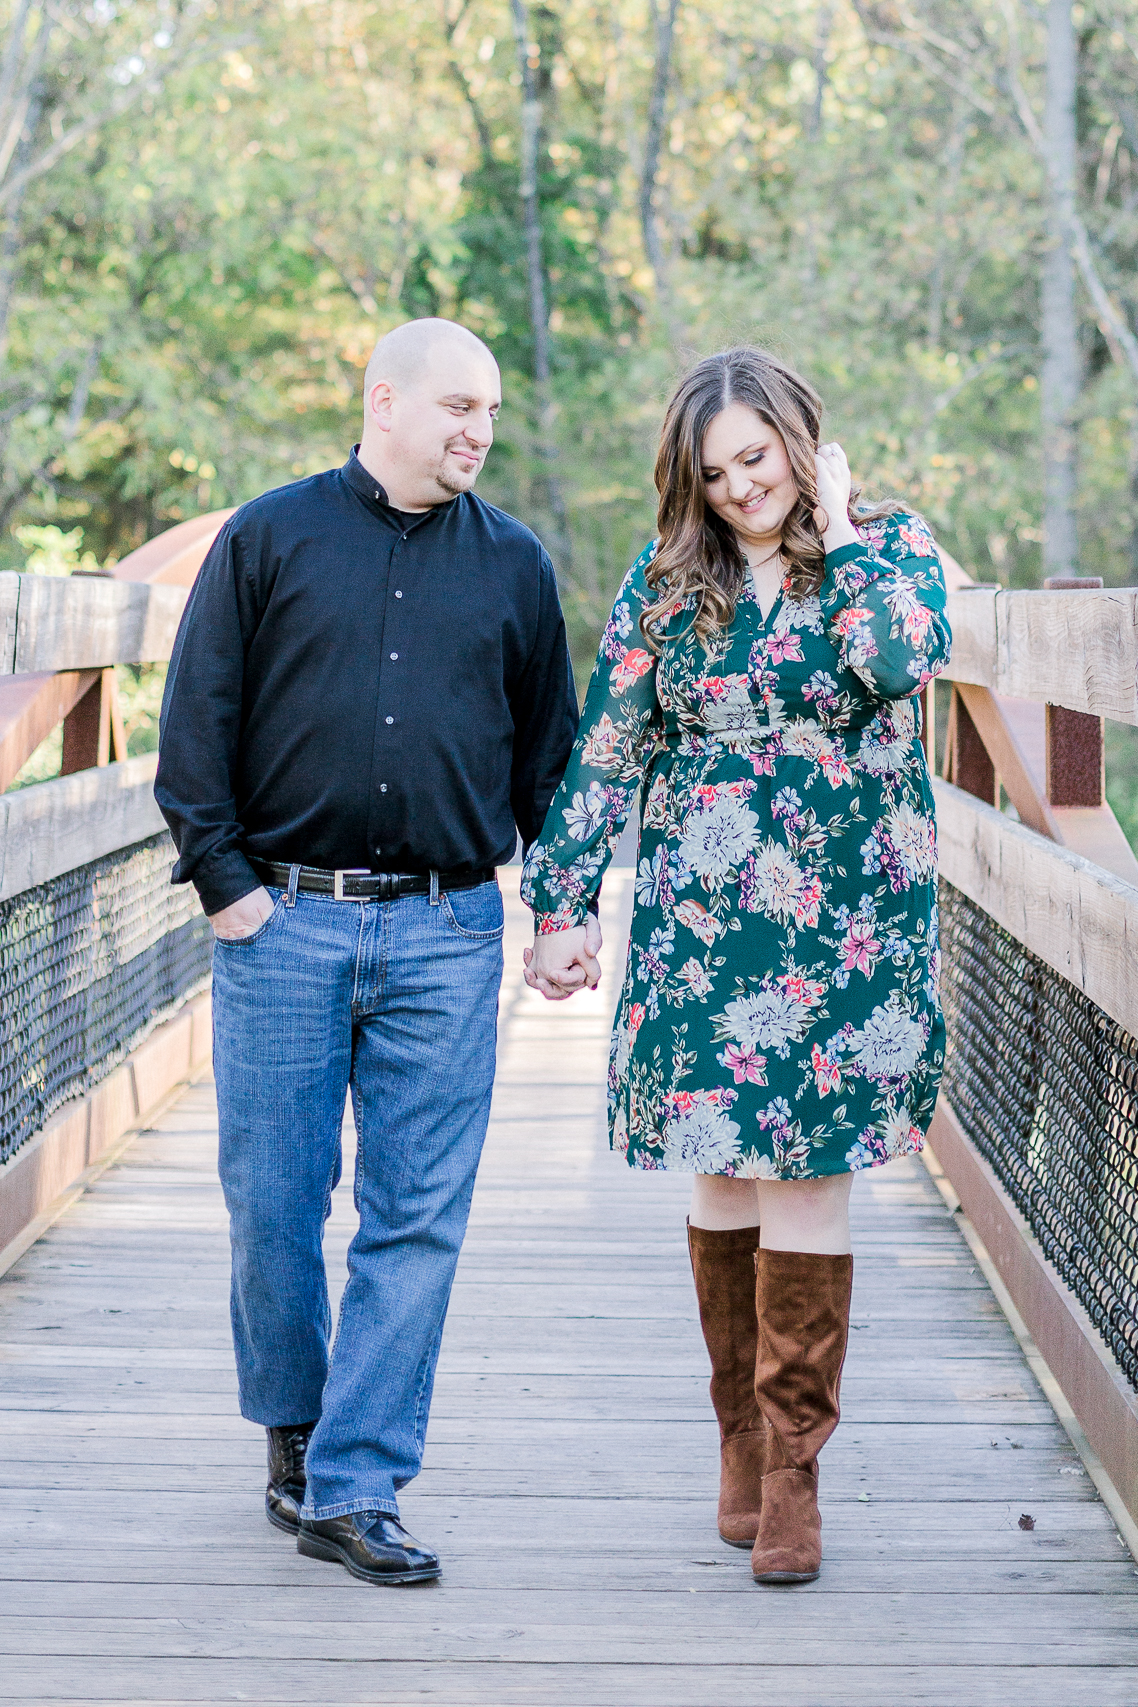 Jacobsburg State Park Nazareth Pennsylvania Woodsy Fall Engagement Session wedding and lifestyle photographer Lytle Photo Co (34 of 64).jpg